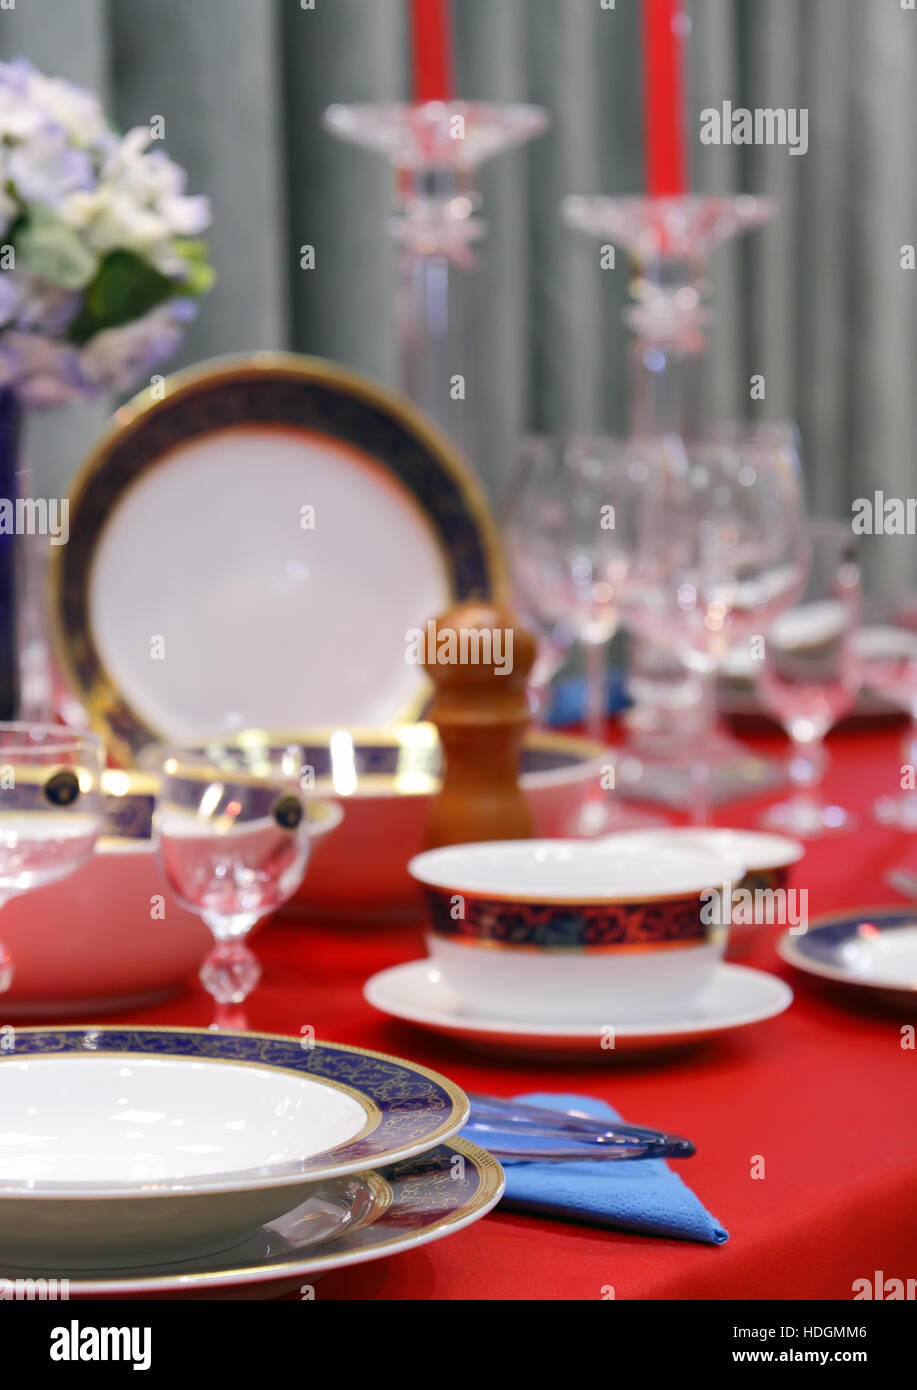 Table appointments on red tablecloth.Accent focus on front. - Stock Image